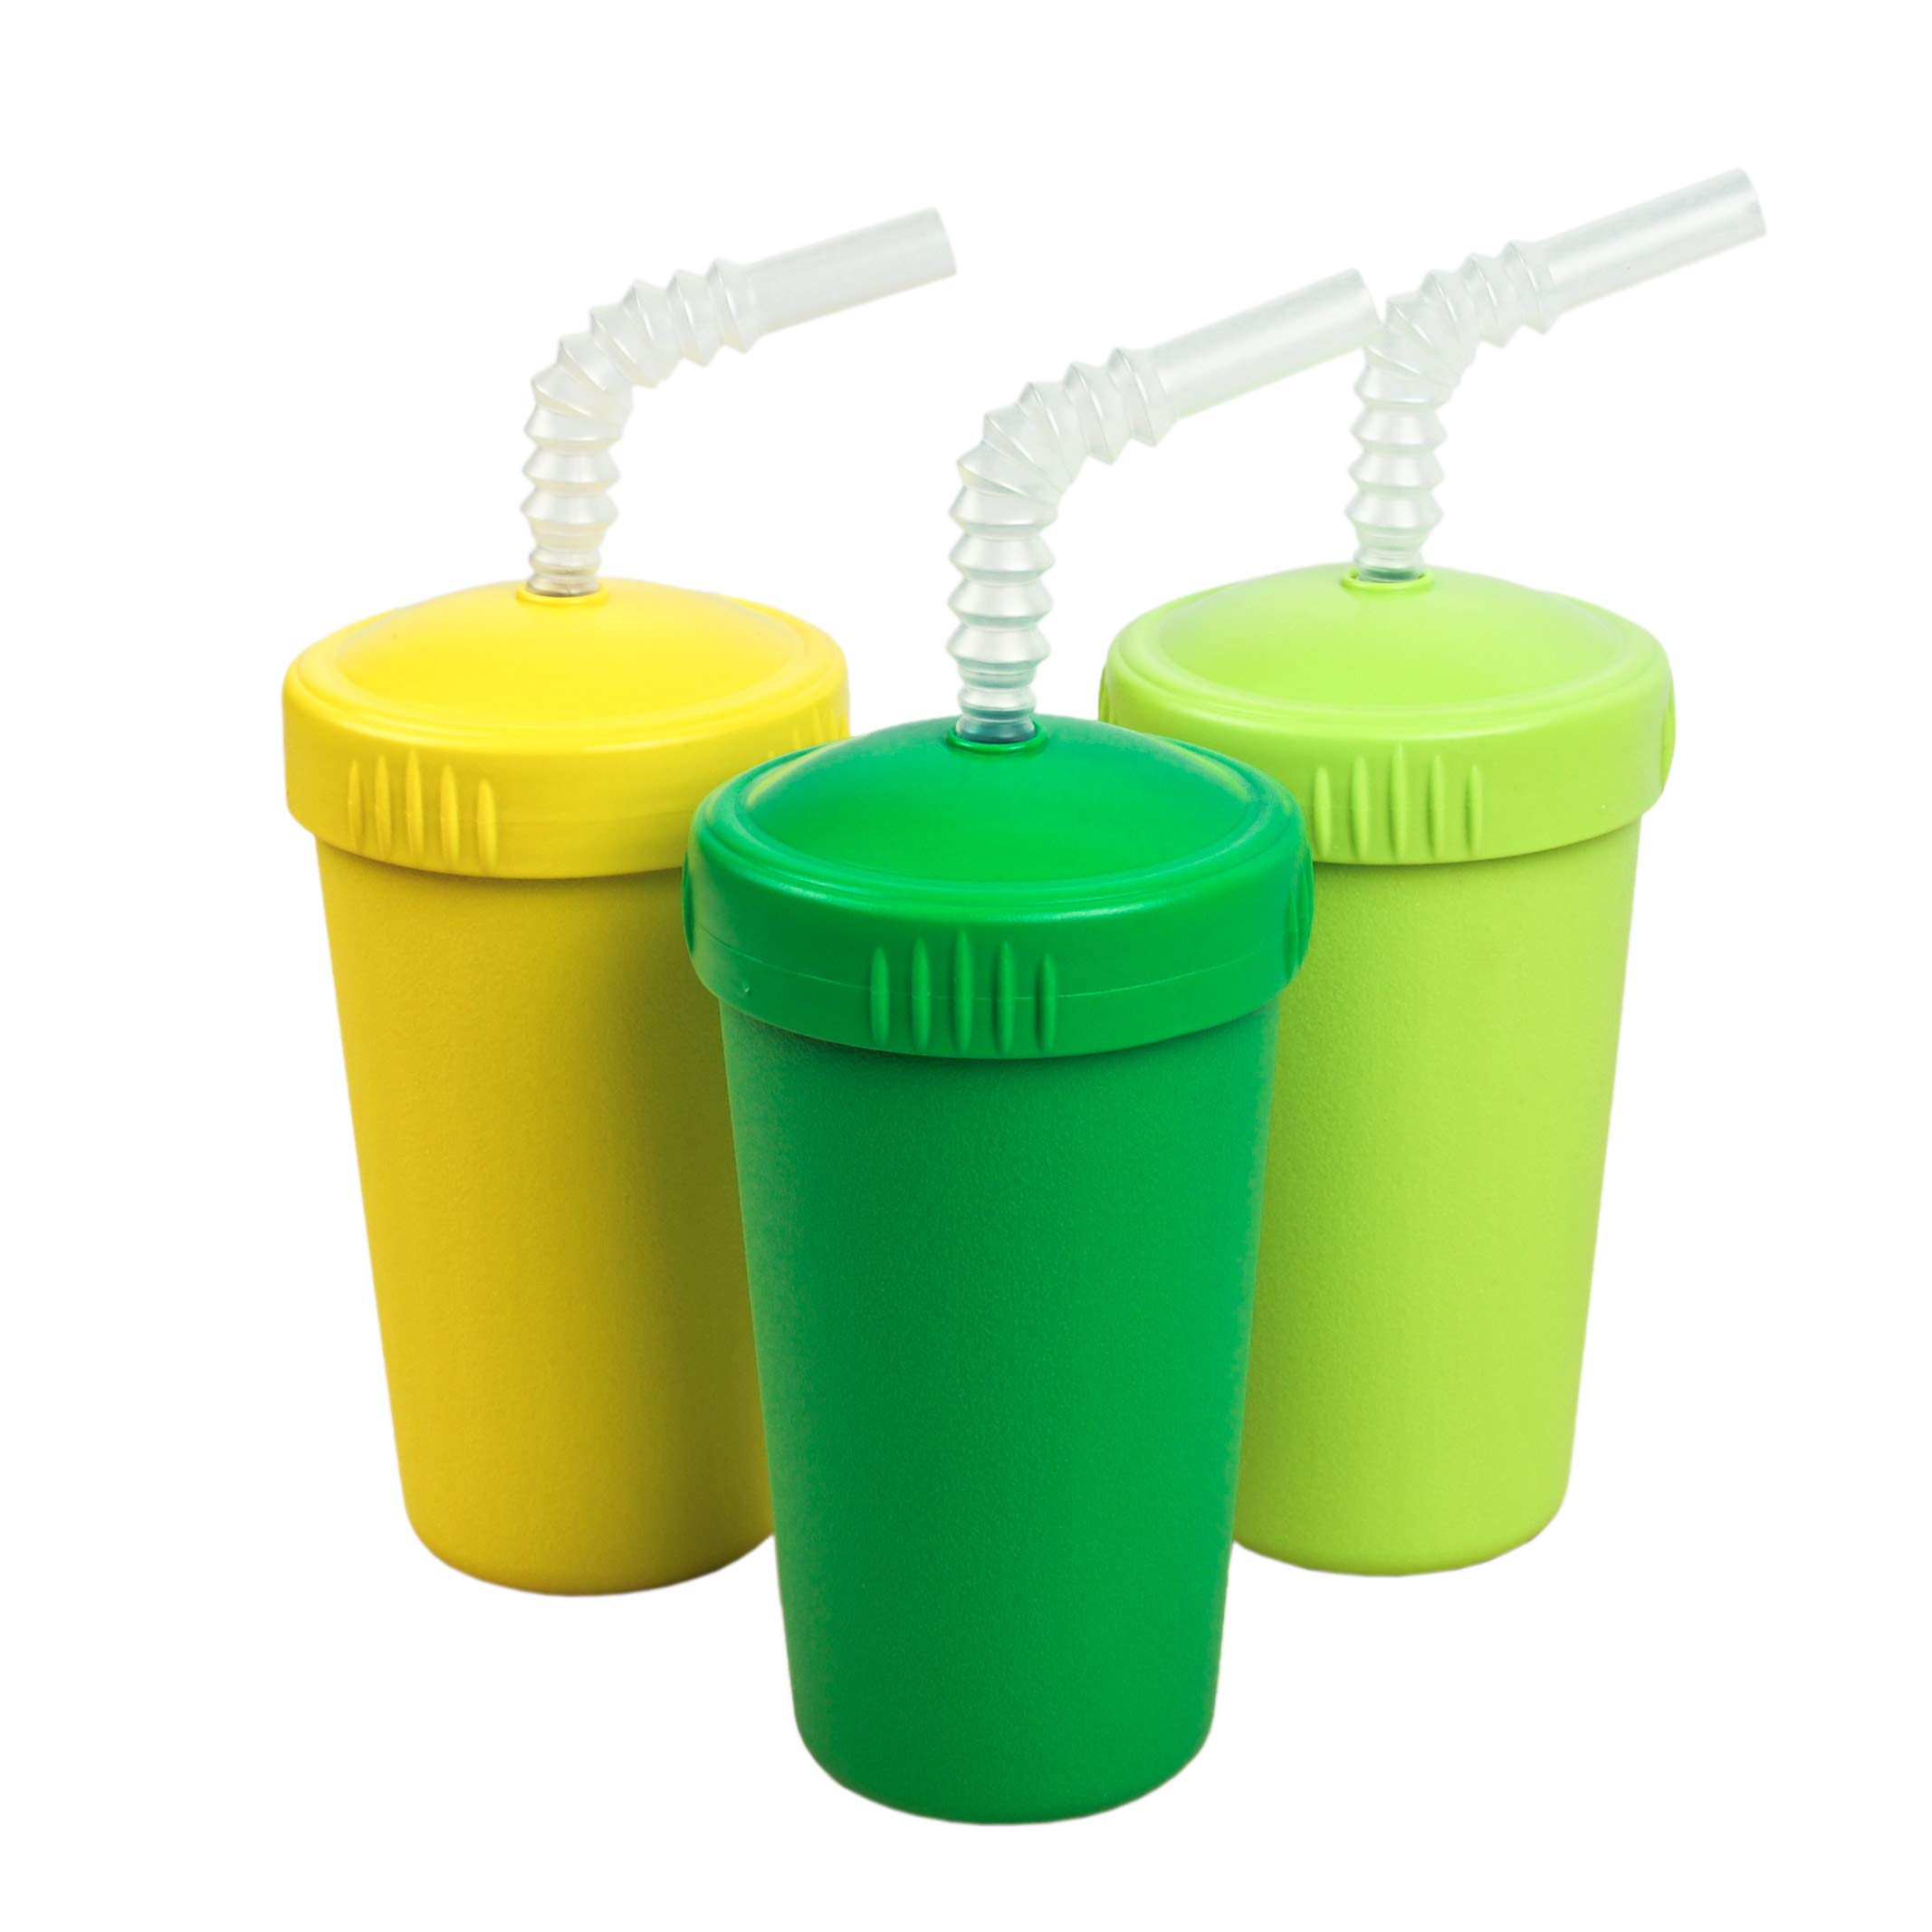 Re-Play Made in USA 3pk Straw Cups with Reversable Straw for Easy Baby, Toddler, Child Feeding - Kelly Green, Lime, Yellow (Stem)